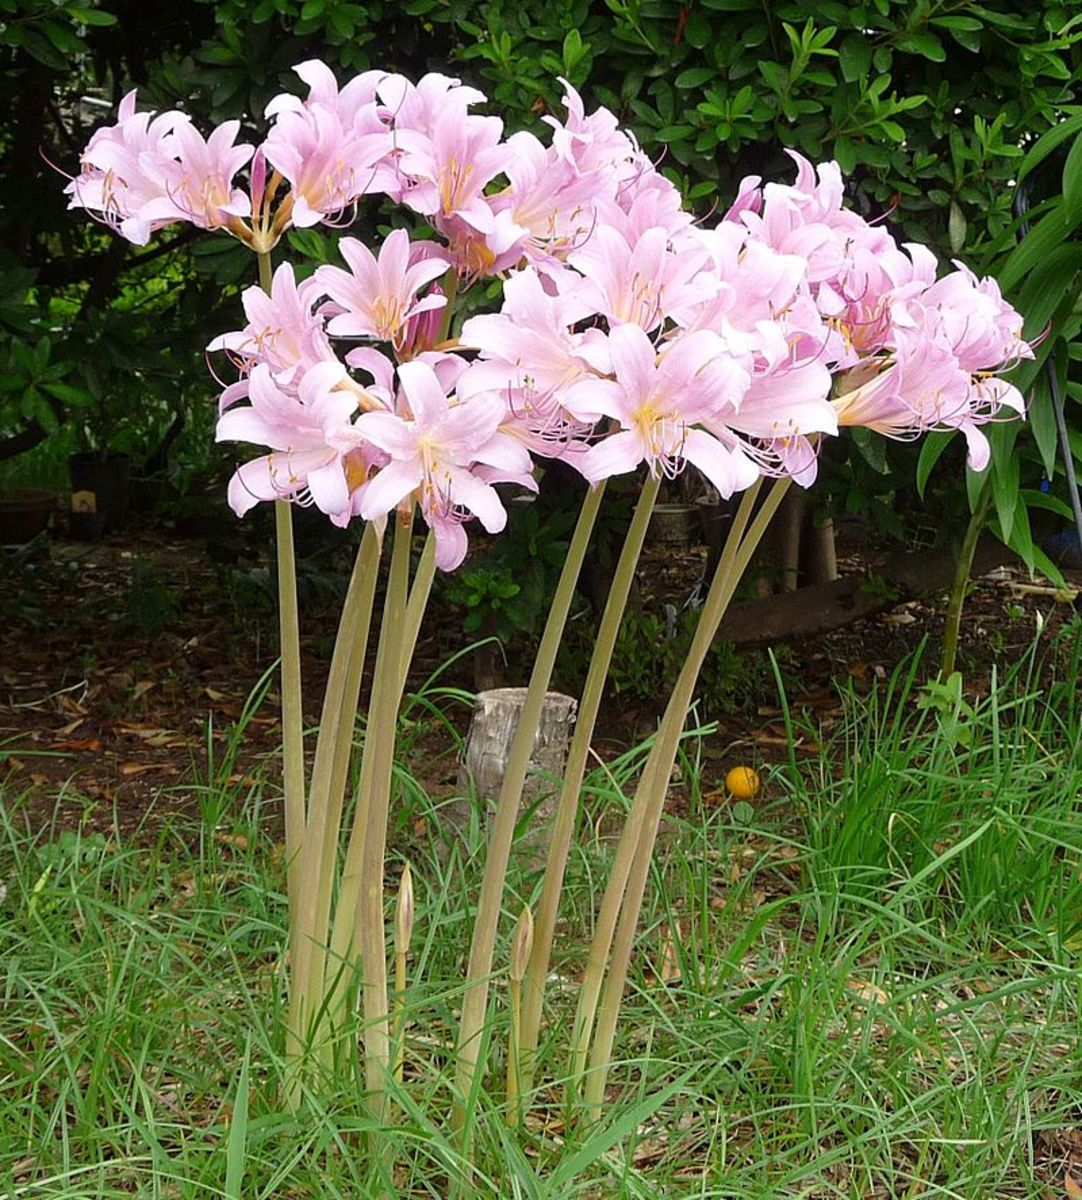 In August, resurrection lilies send up flower stalks but no leaves.